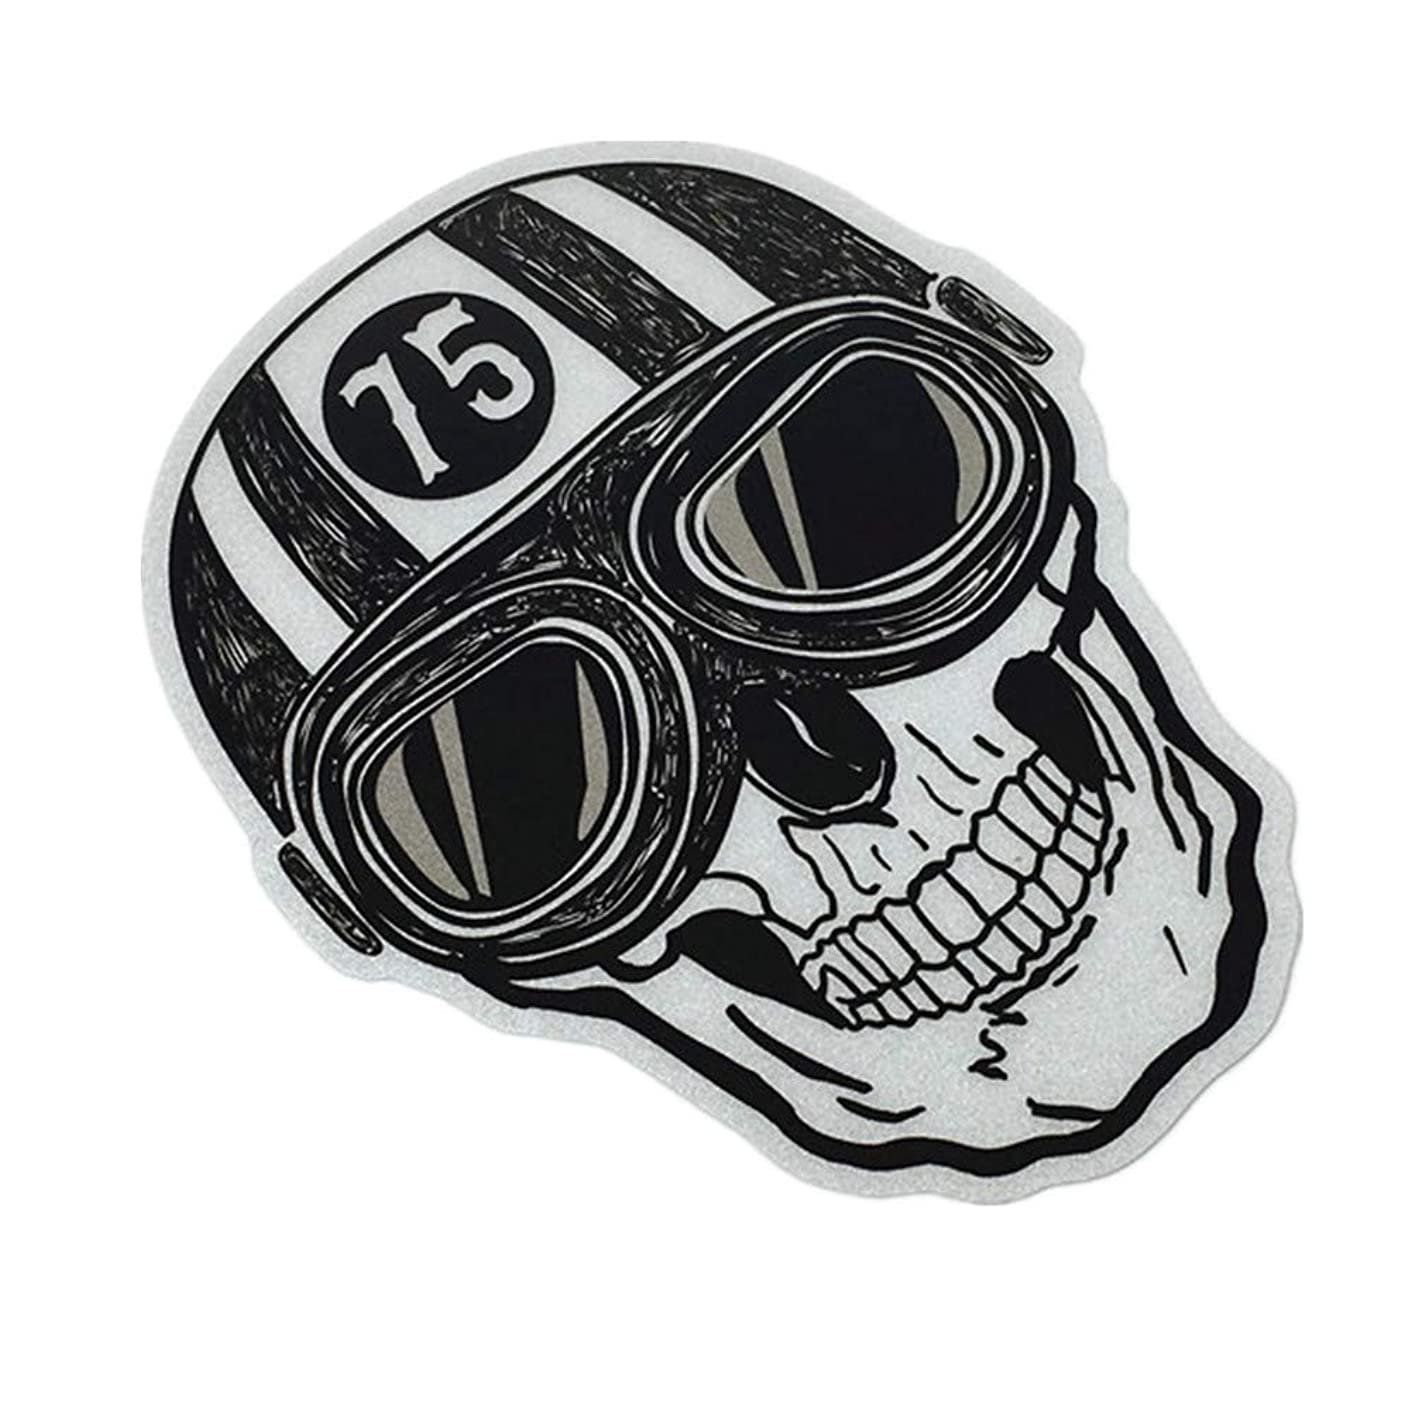 Langersun 1PCS Car Styling Decal Motorcycle Stickers Reflective for Skull Cafe Racer 10x8cm